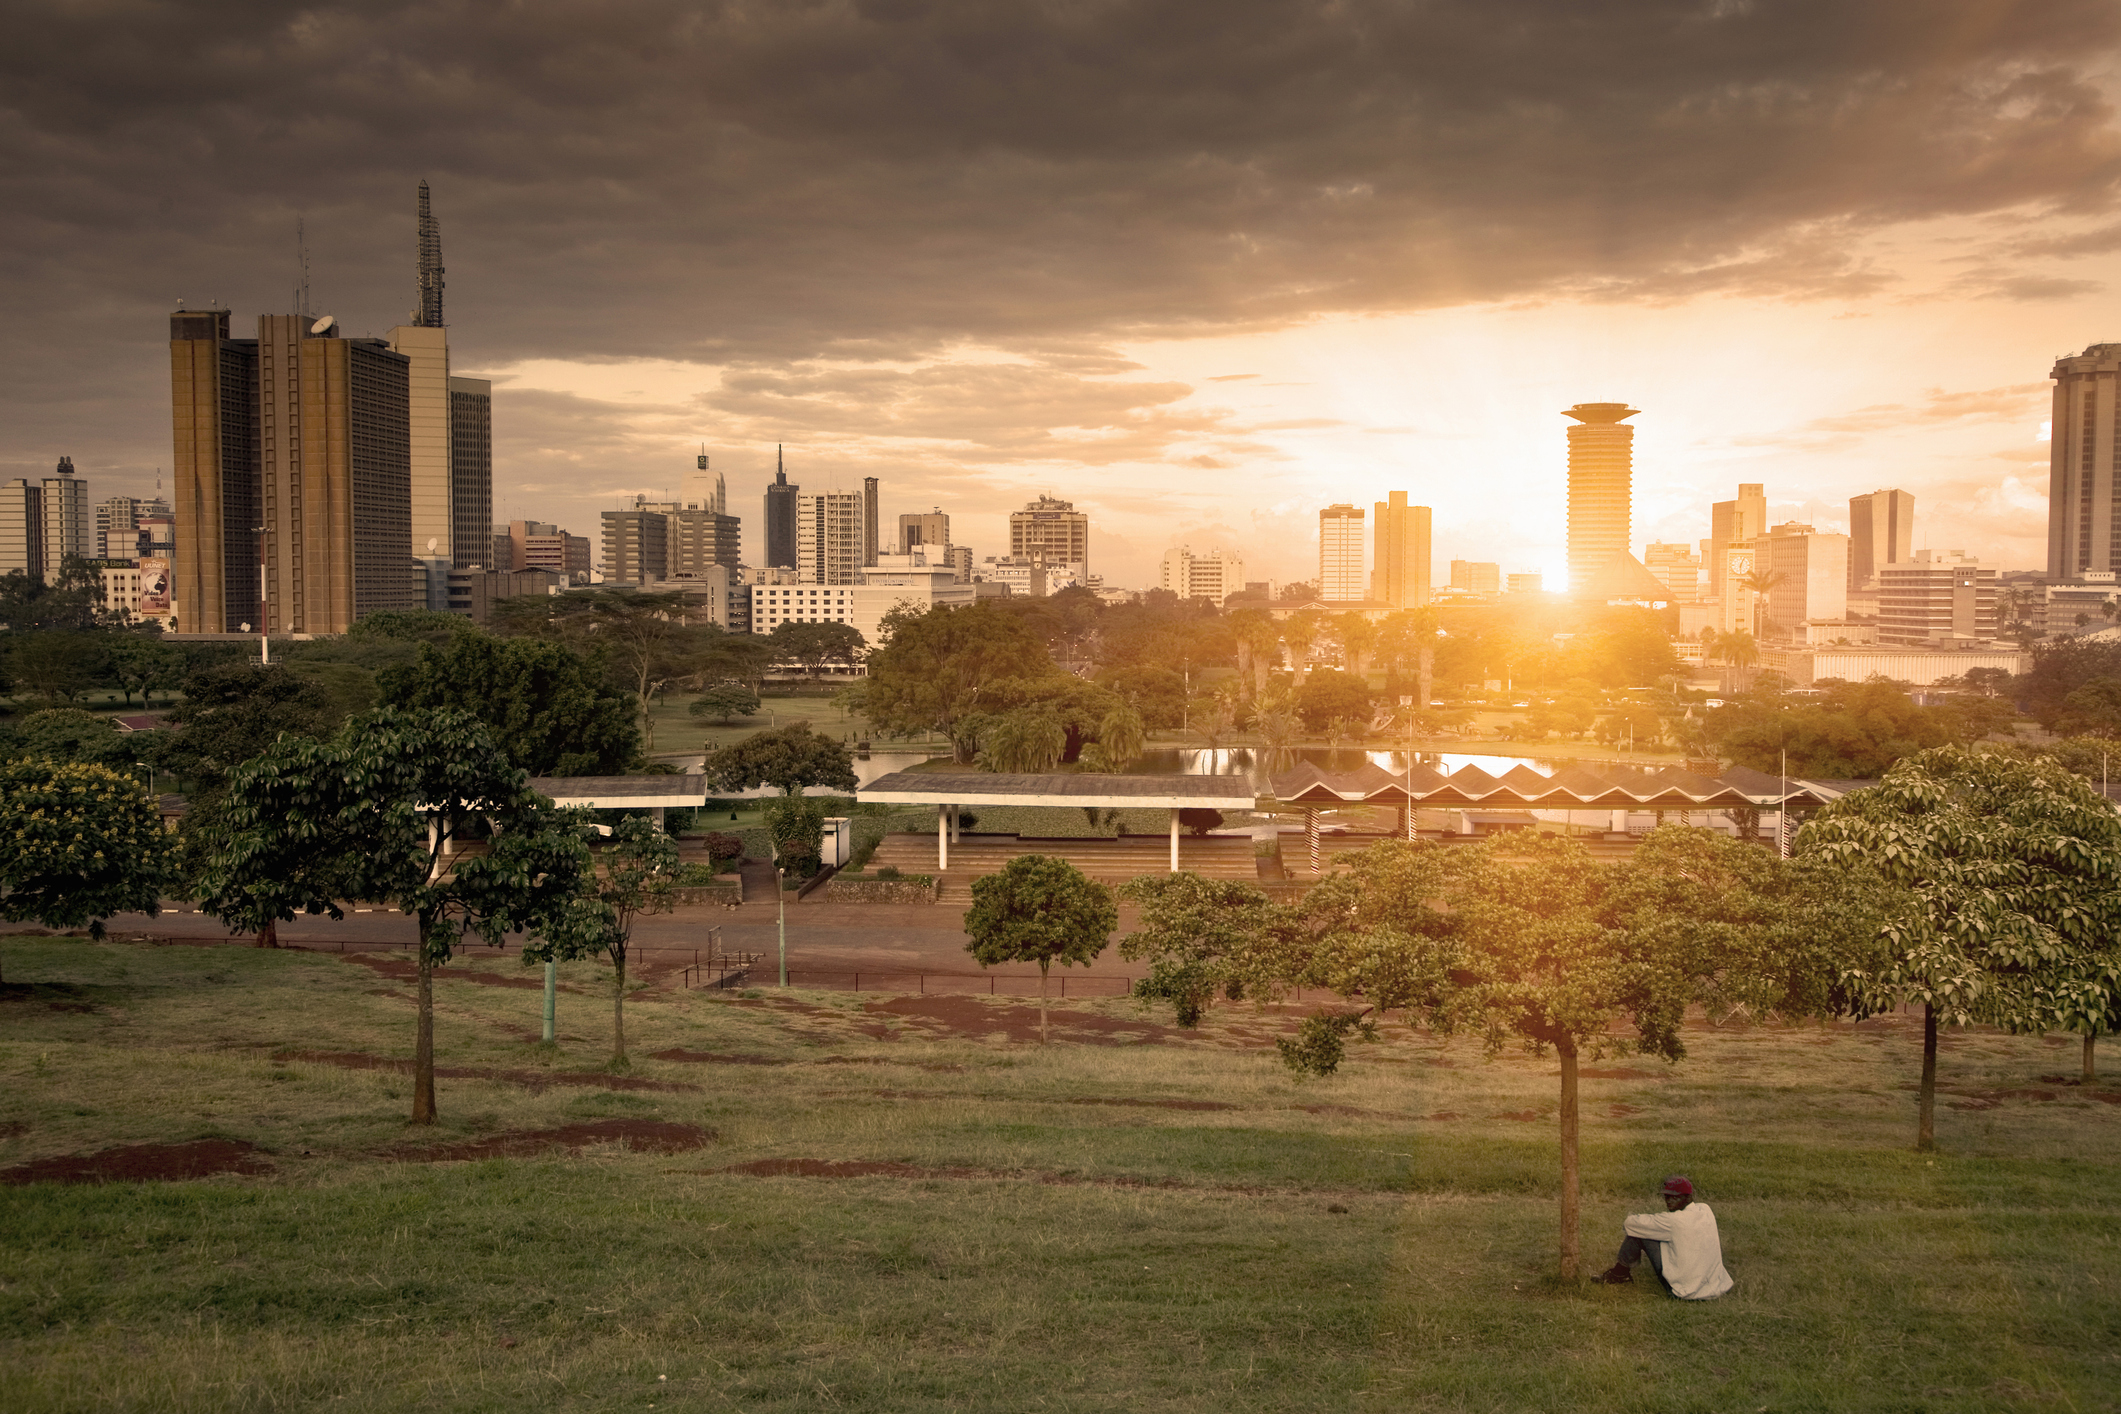 The sun goes does in Nairobi